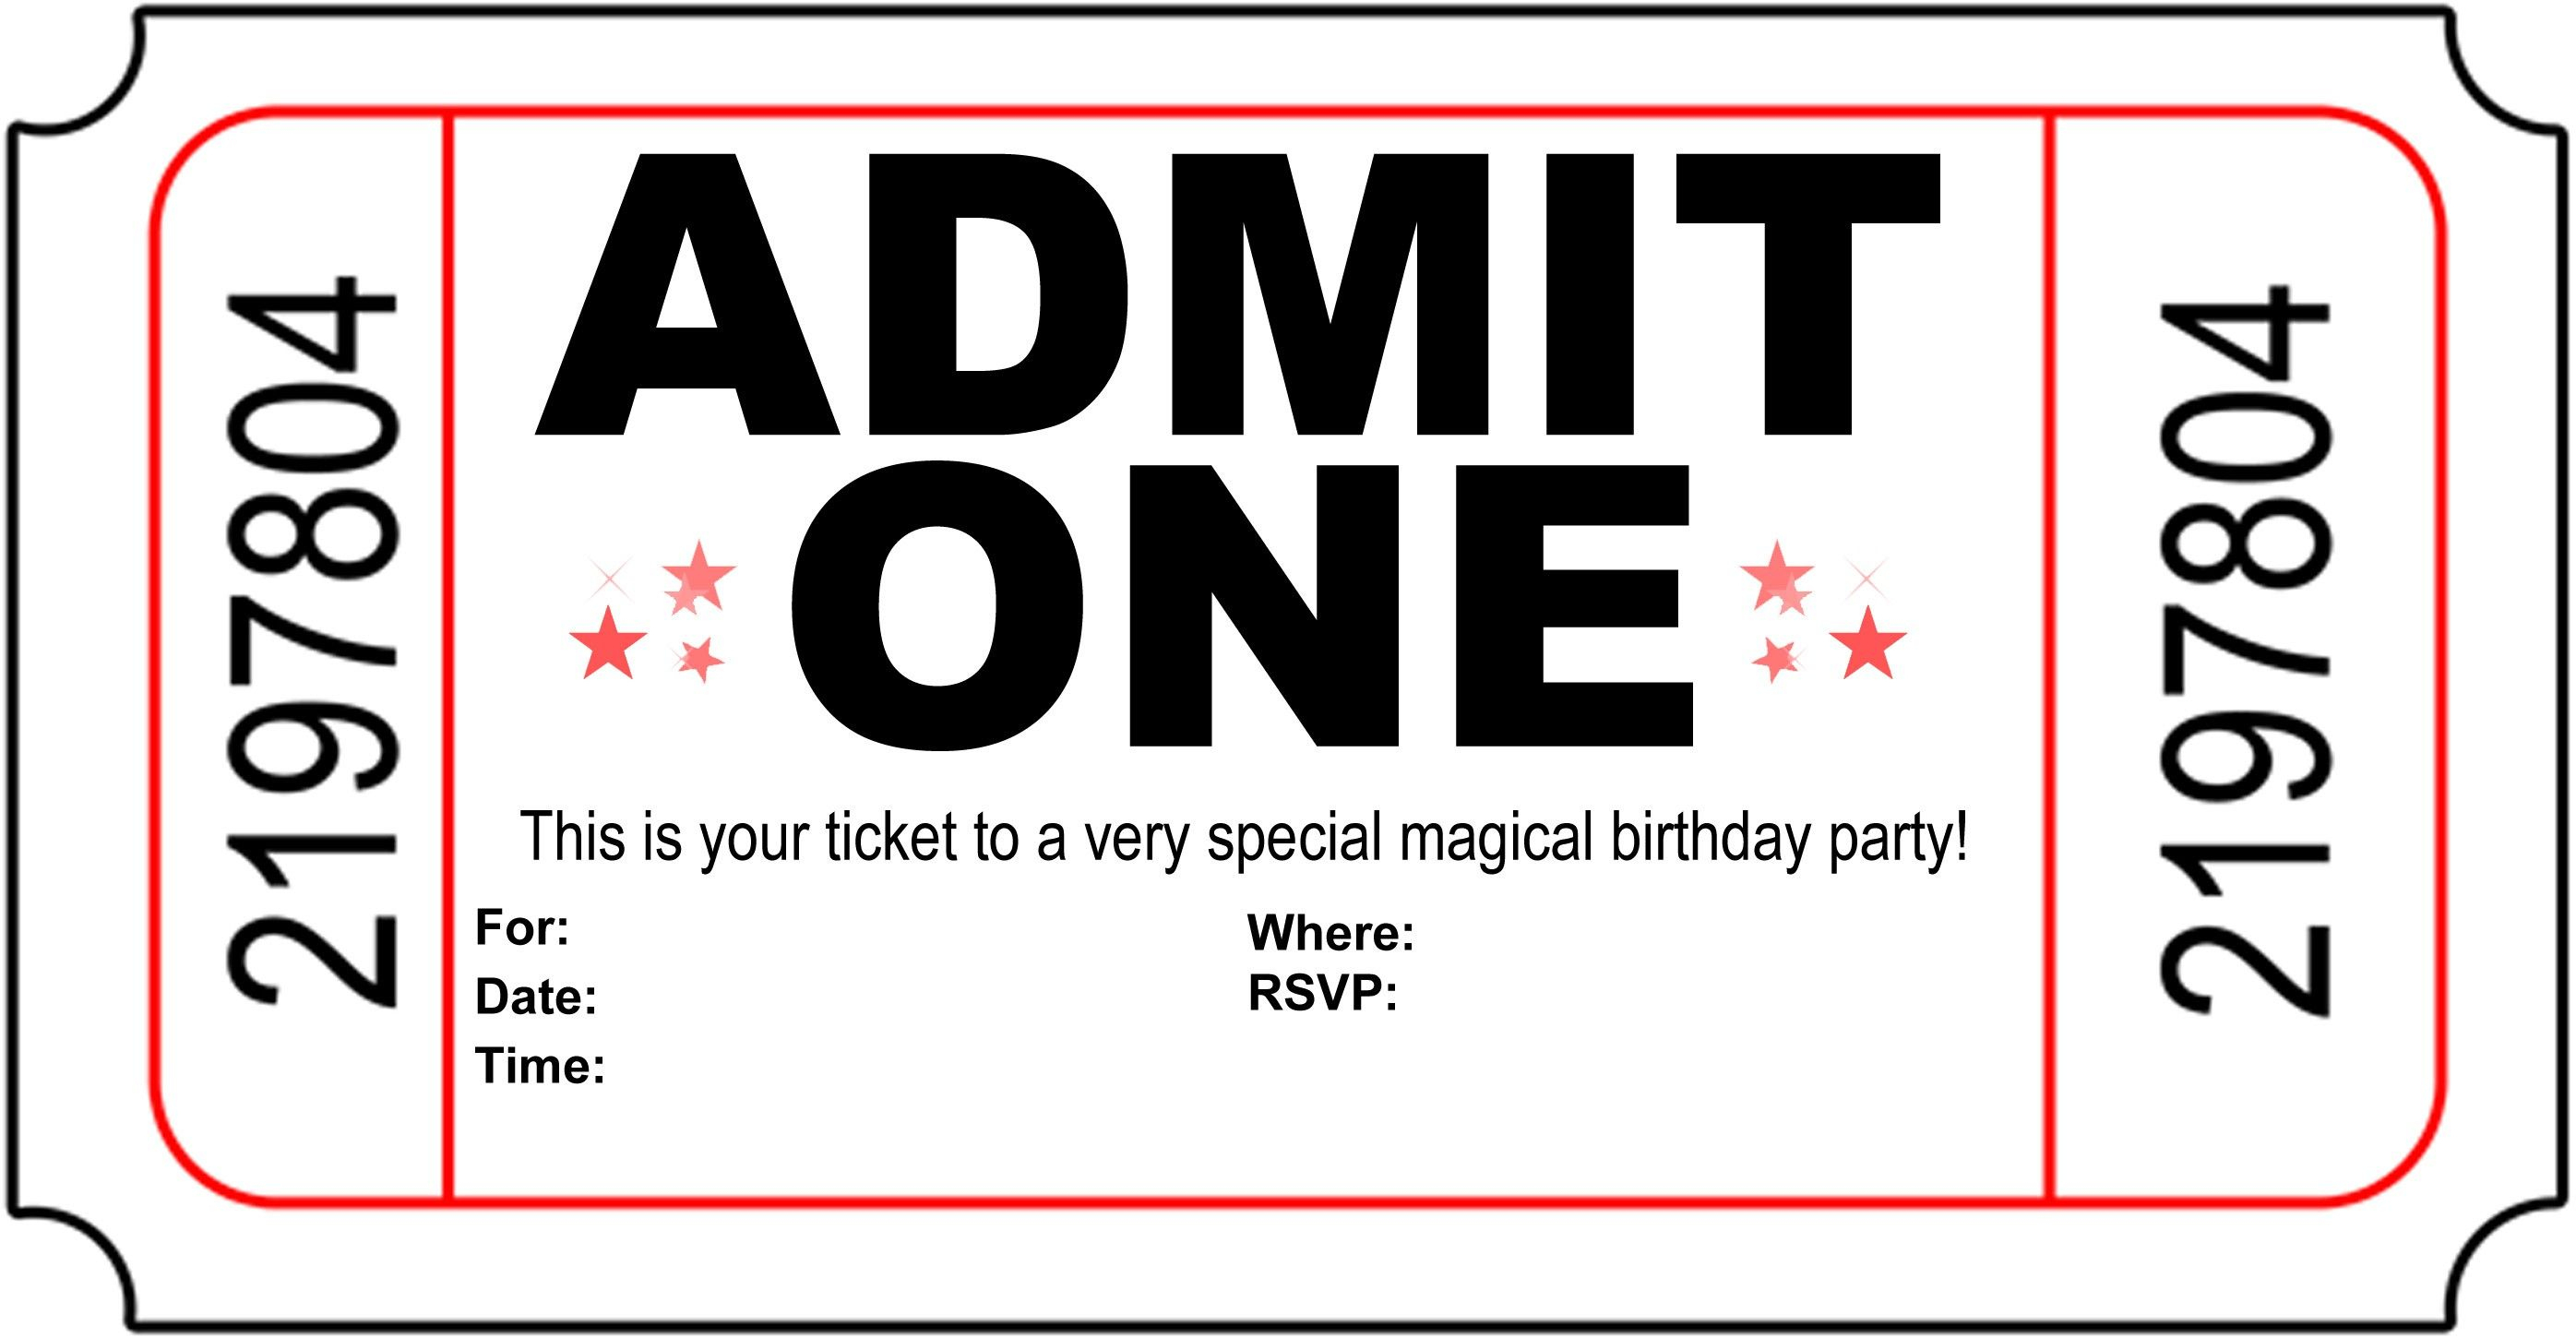 Birthday Party Invitation Free Printable | Printshop. | Pinterest - Free Printable Movie Themed Invitations